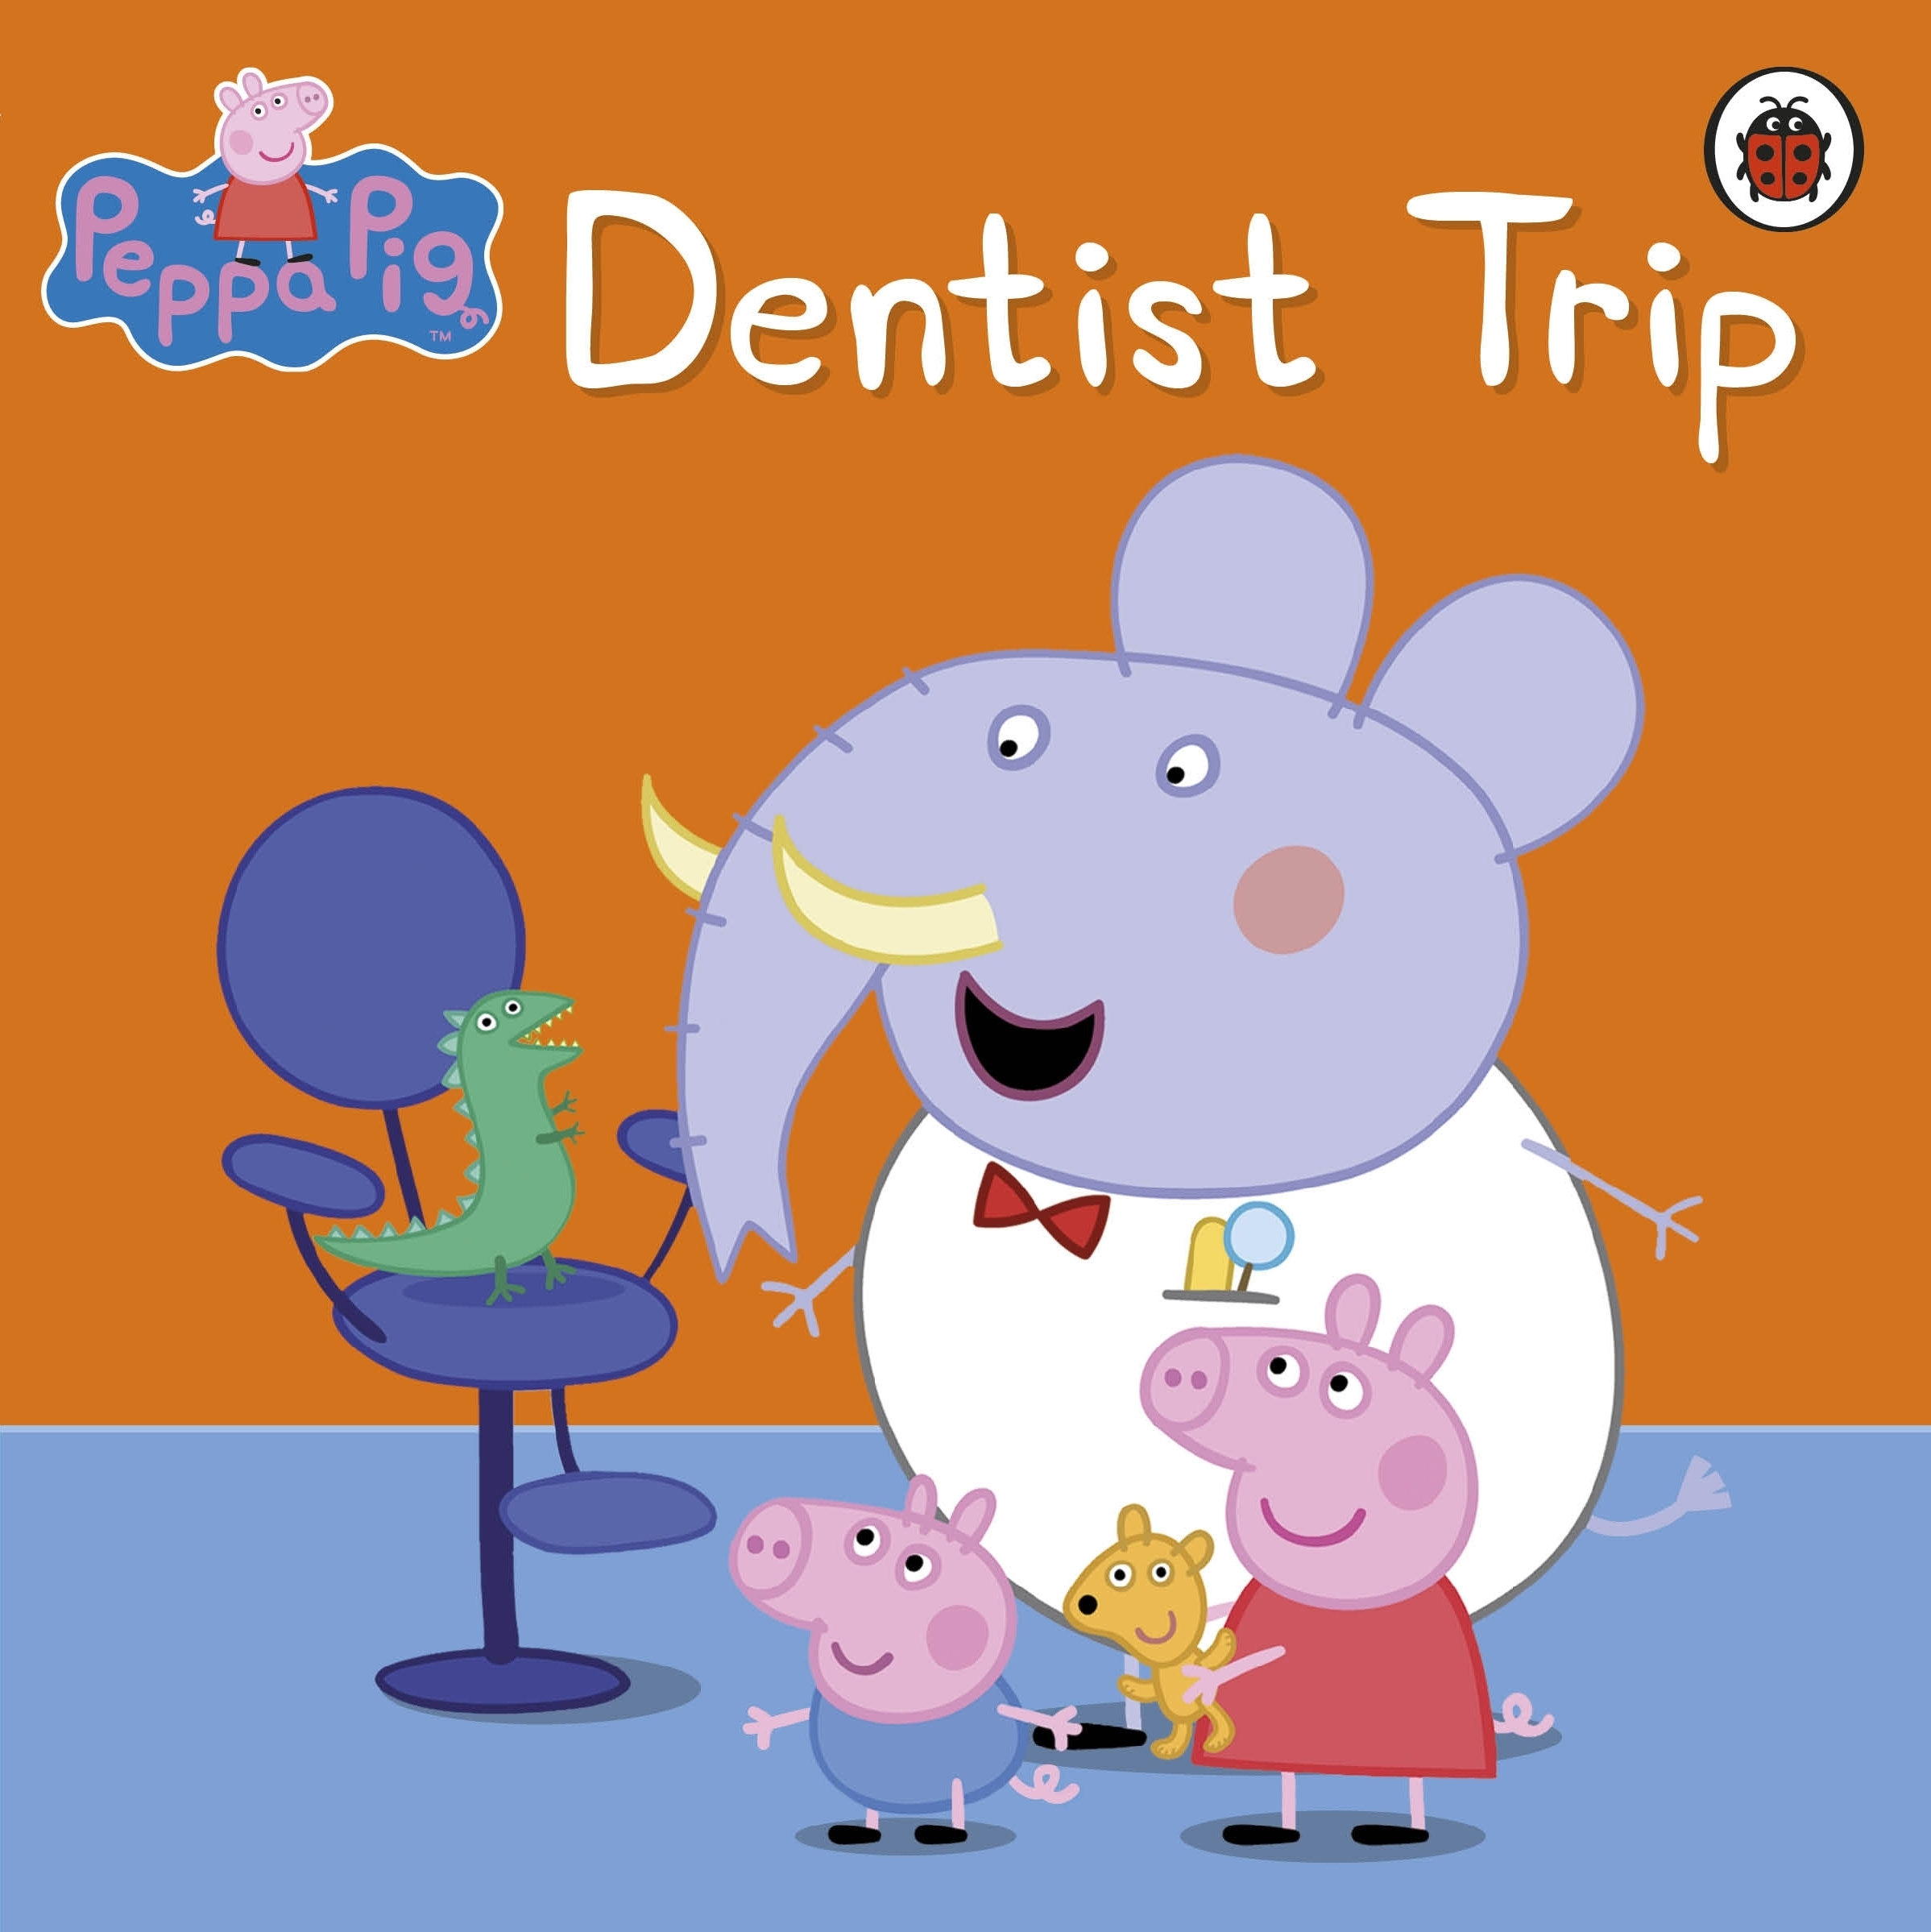 Picture of Peppa Pig: Dentist Trip